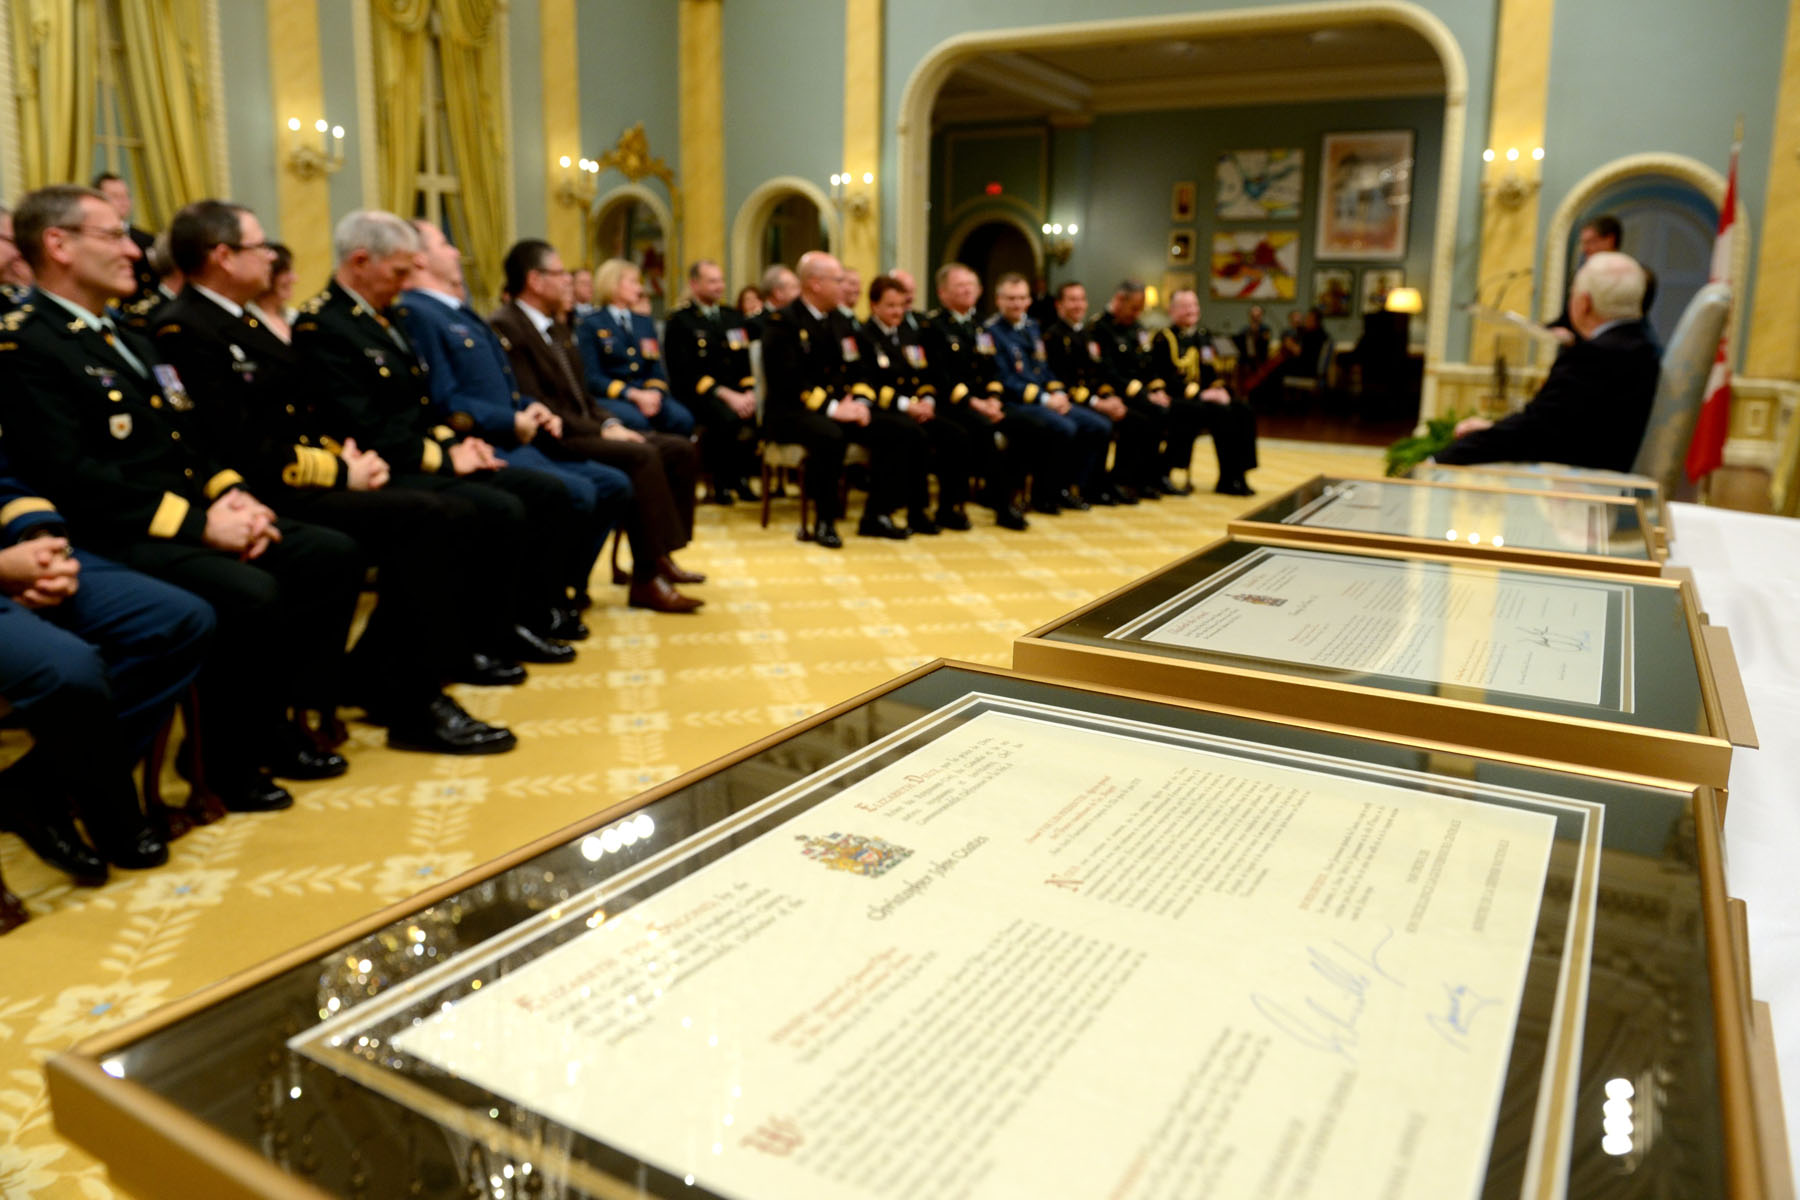 The members honoured during the ceremony were promoted to the rank of general or flag officer.